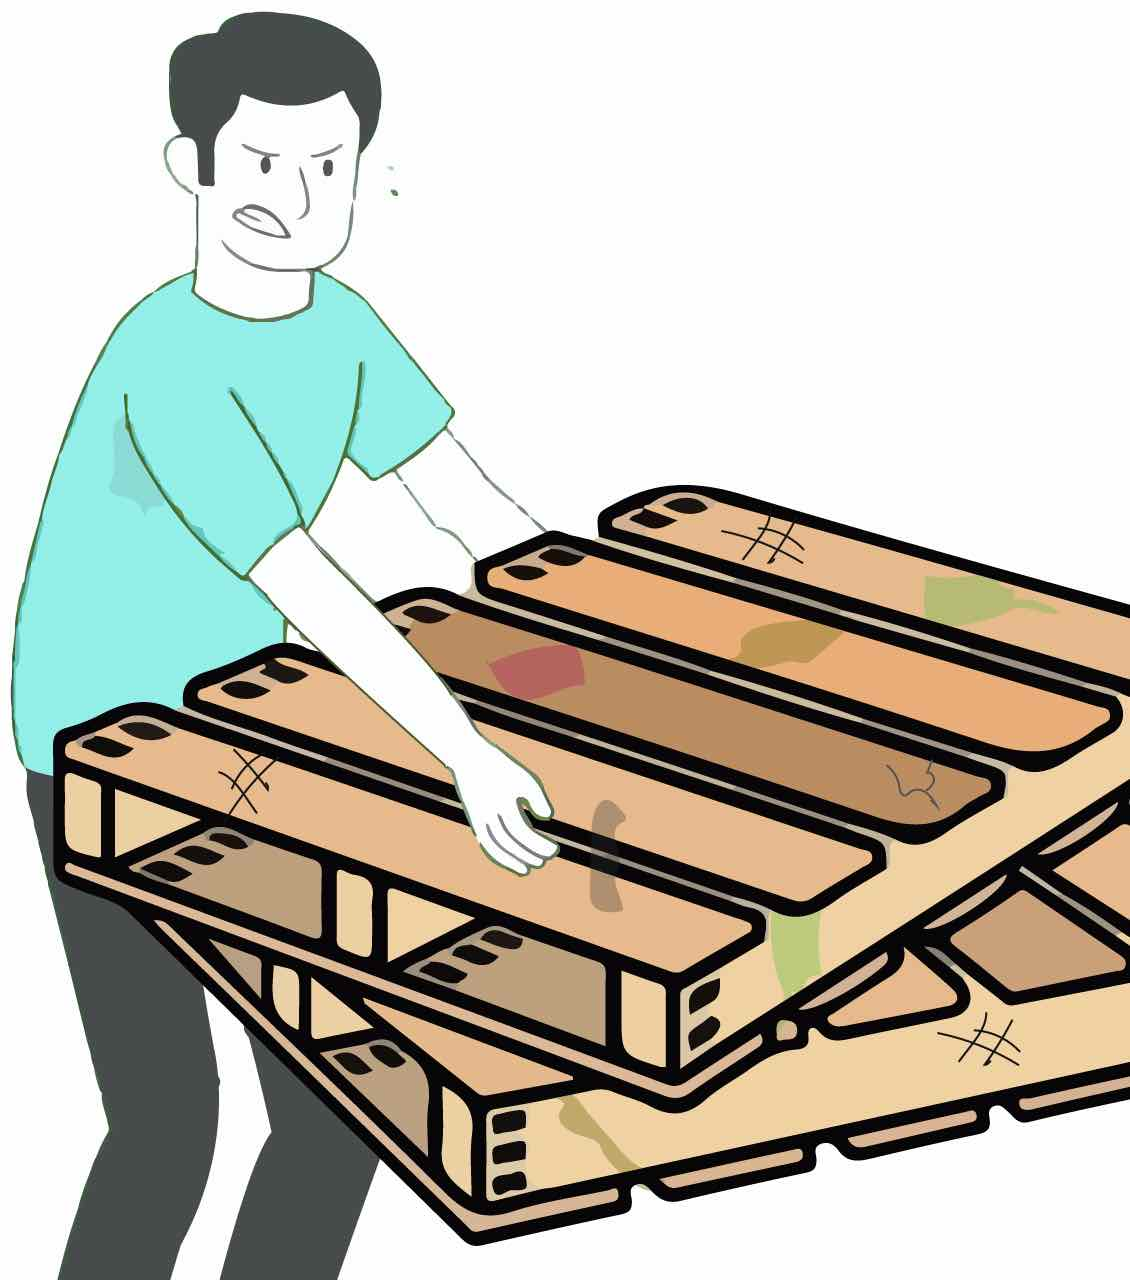 Pallet removal and disposal services